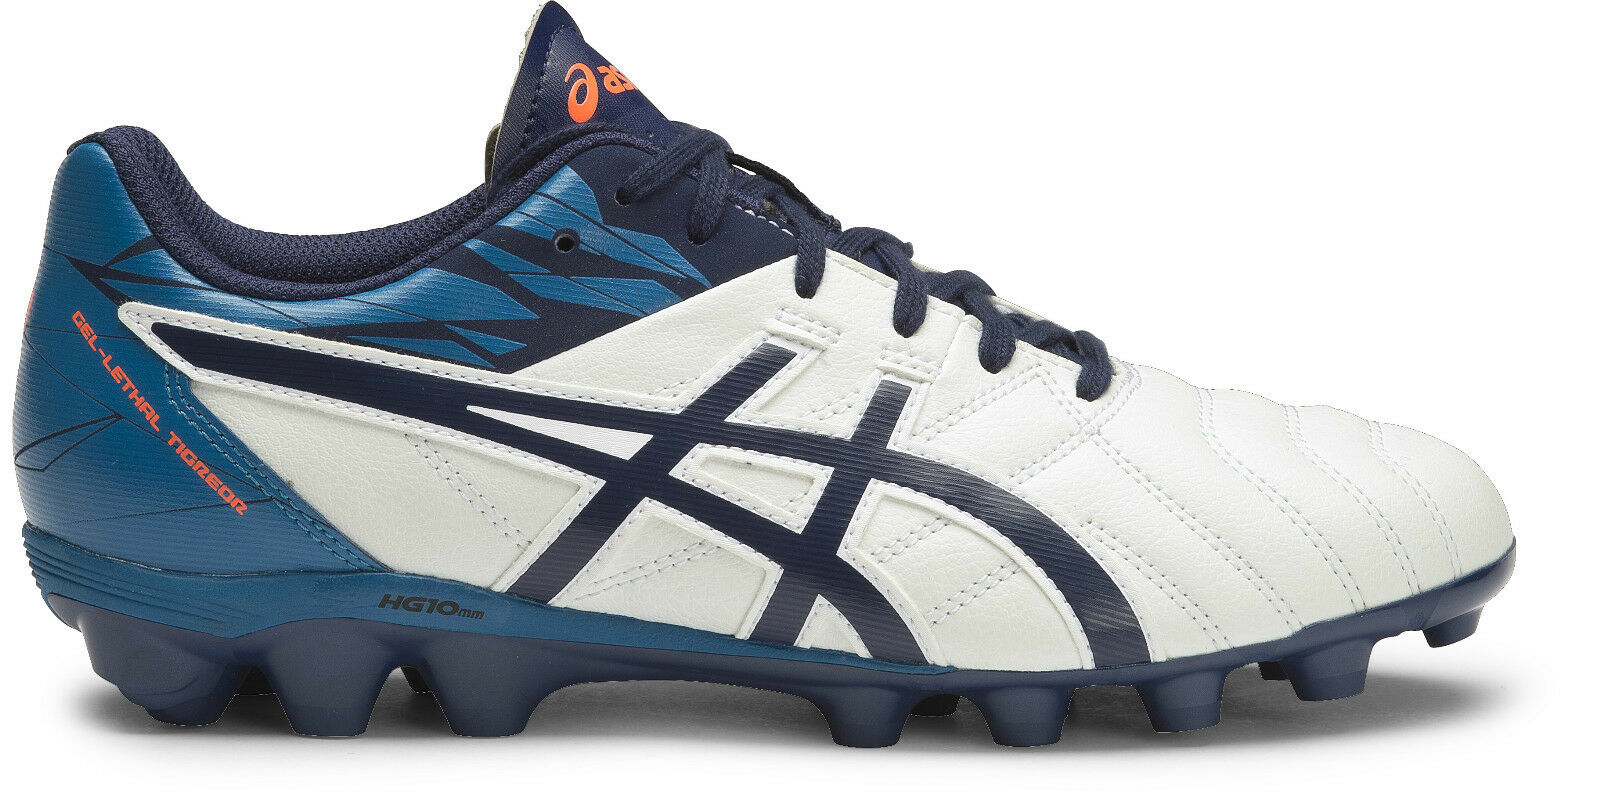 Asics Lethal Tigreor Tigreor Lethal 9 IT GS Kids Football Schuhes (0150) + Free Aus Delivery 93a337